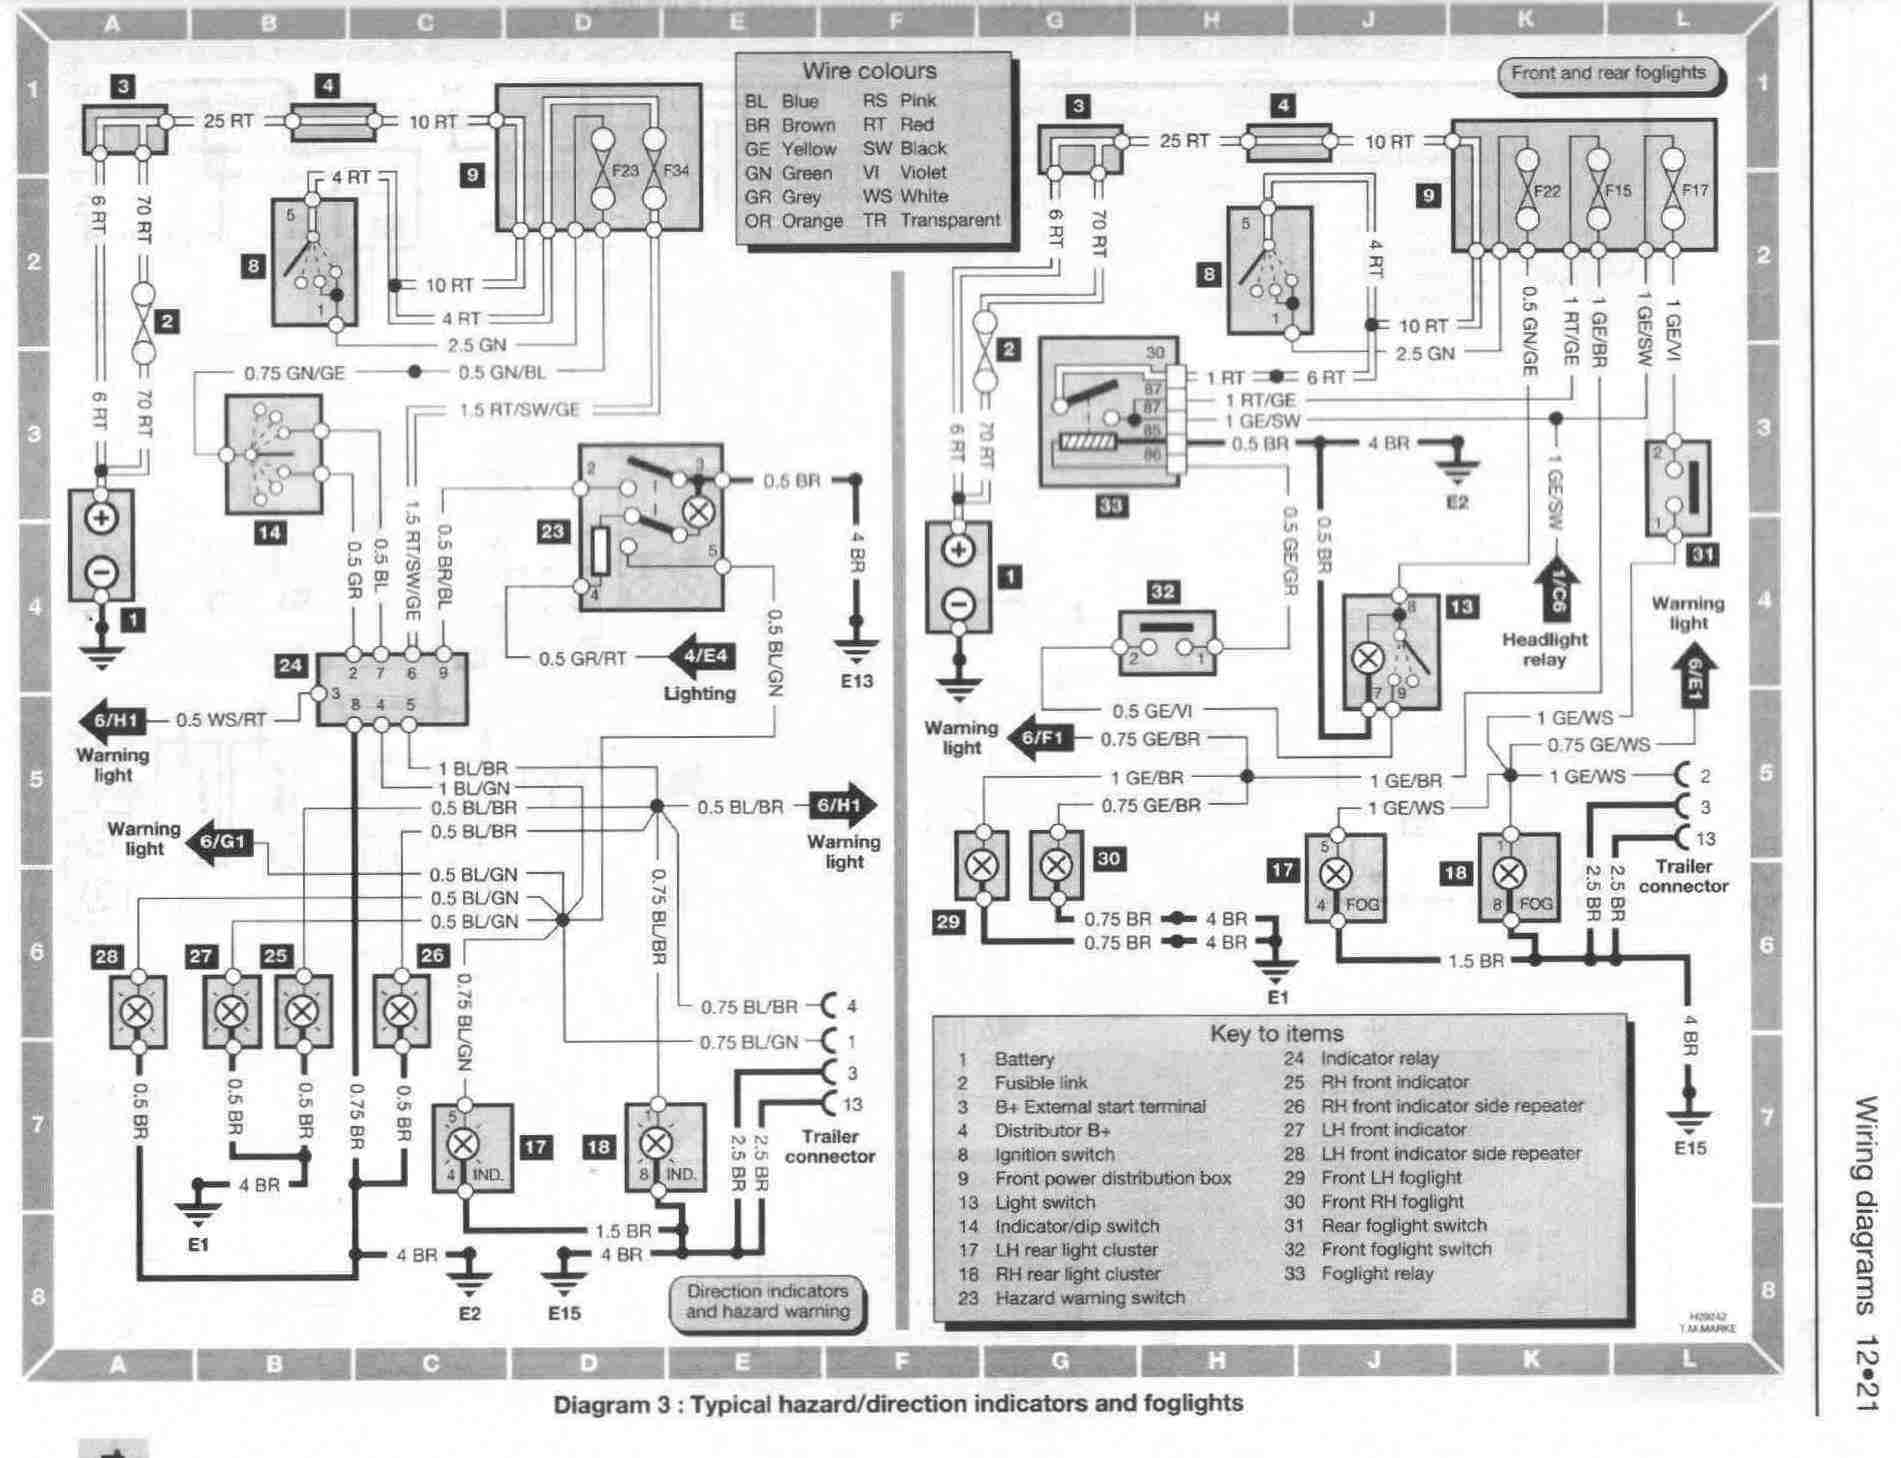 2000 bmw e46 radio wiring diagram dometic rv refrigerator also fuse box location in